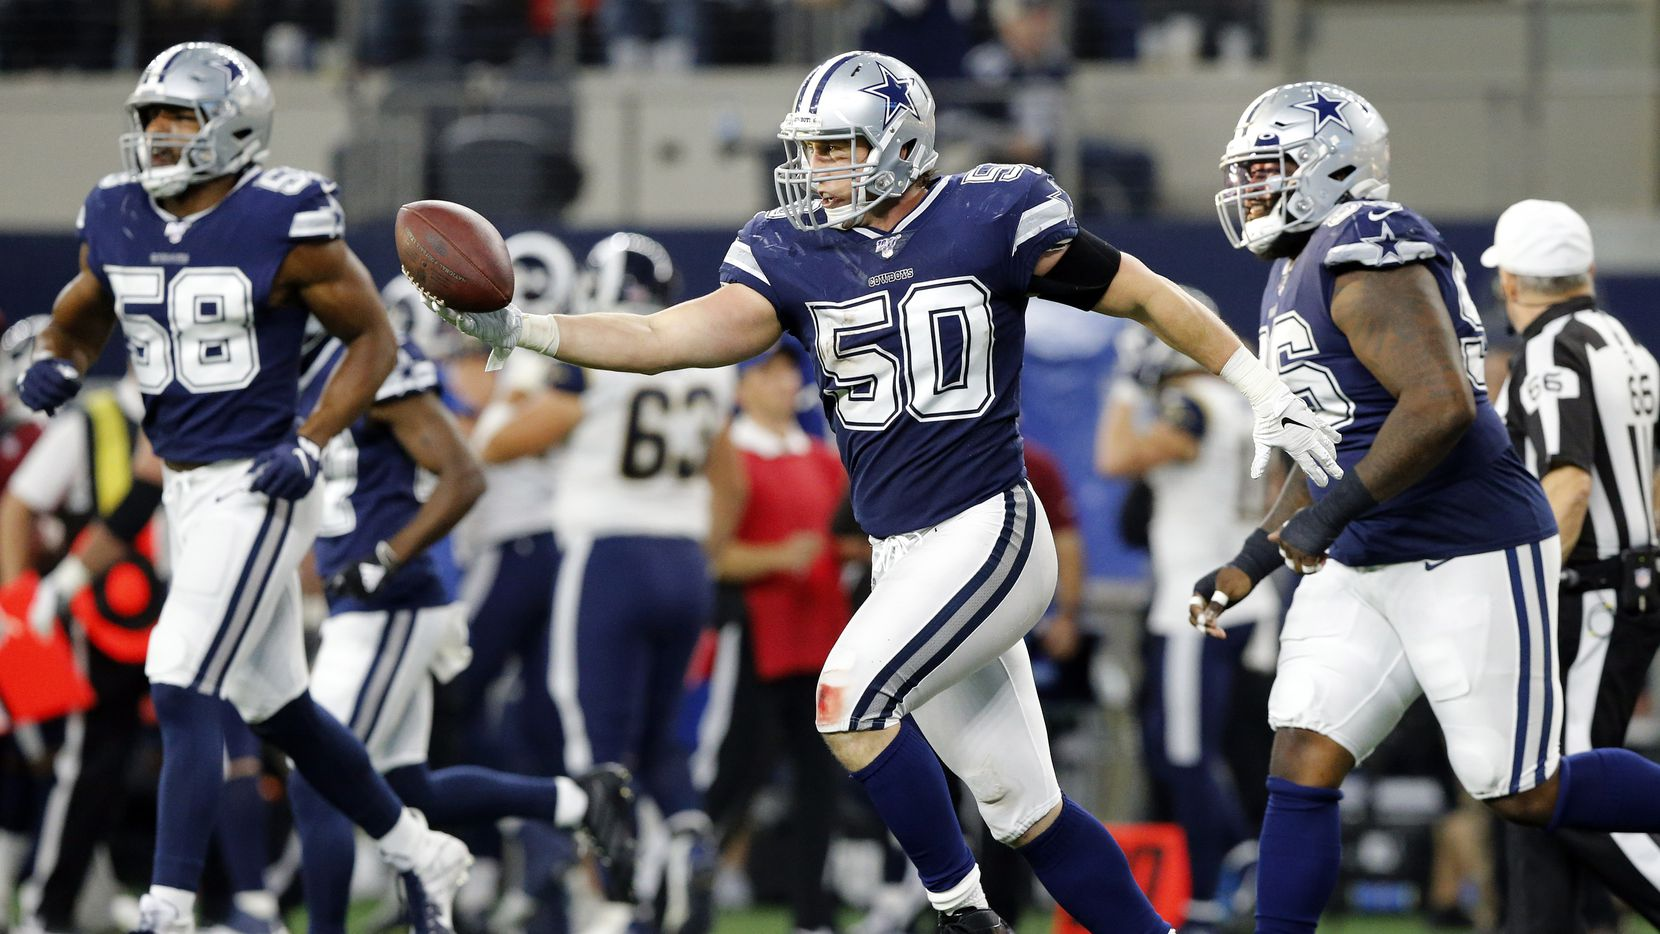 Dallas Cowboys outside linebacker Sean Lee (50) extends his arm to hand quarterback Dak Prescott (not pictured) his interception ball after making an interception at AT&T Stadium in Arlington, Texas, Sunday, December 15, 2019.